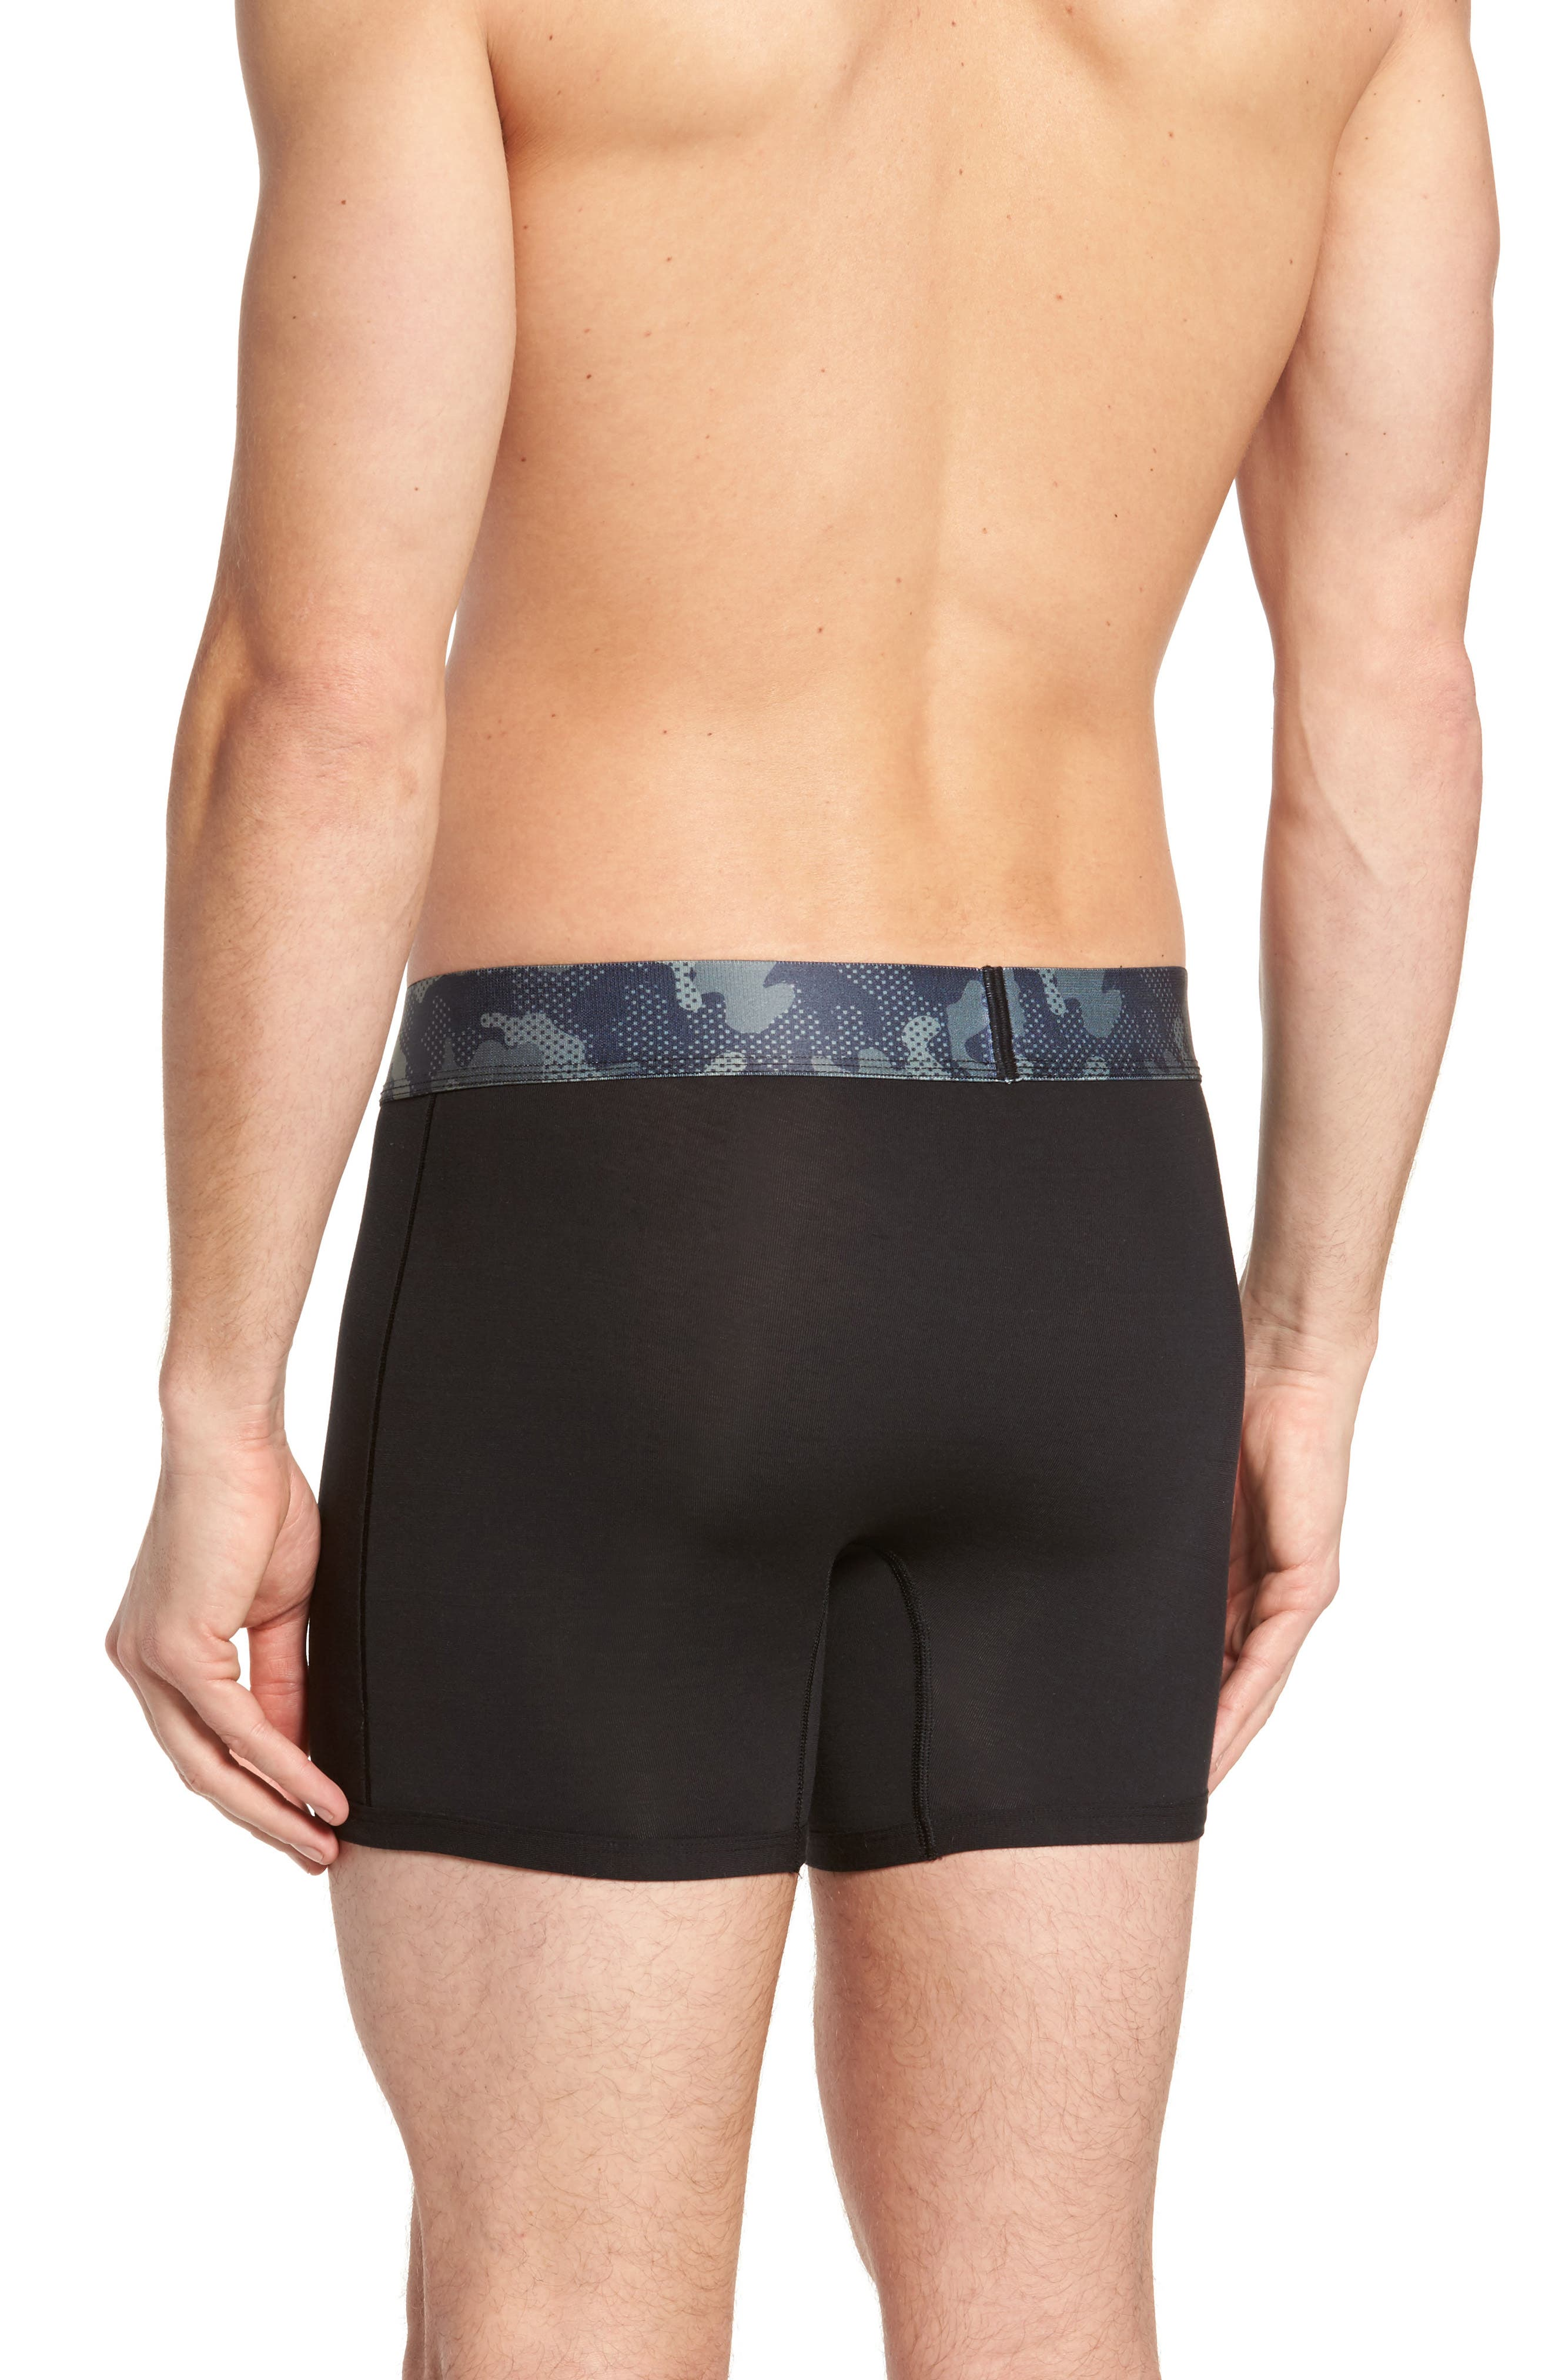 Second Skin Kevin Hart Boxer Briefs,                             Alternate thumbnail 3, color,                             Black